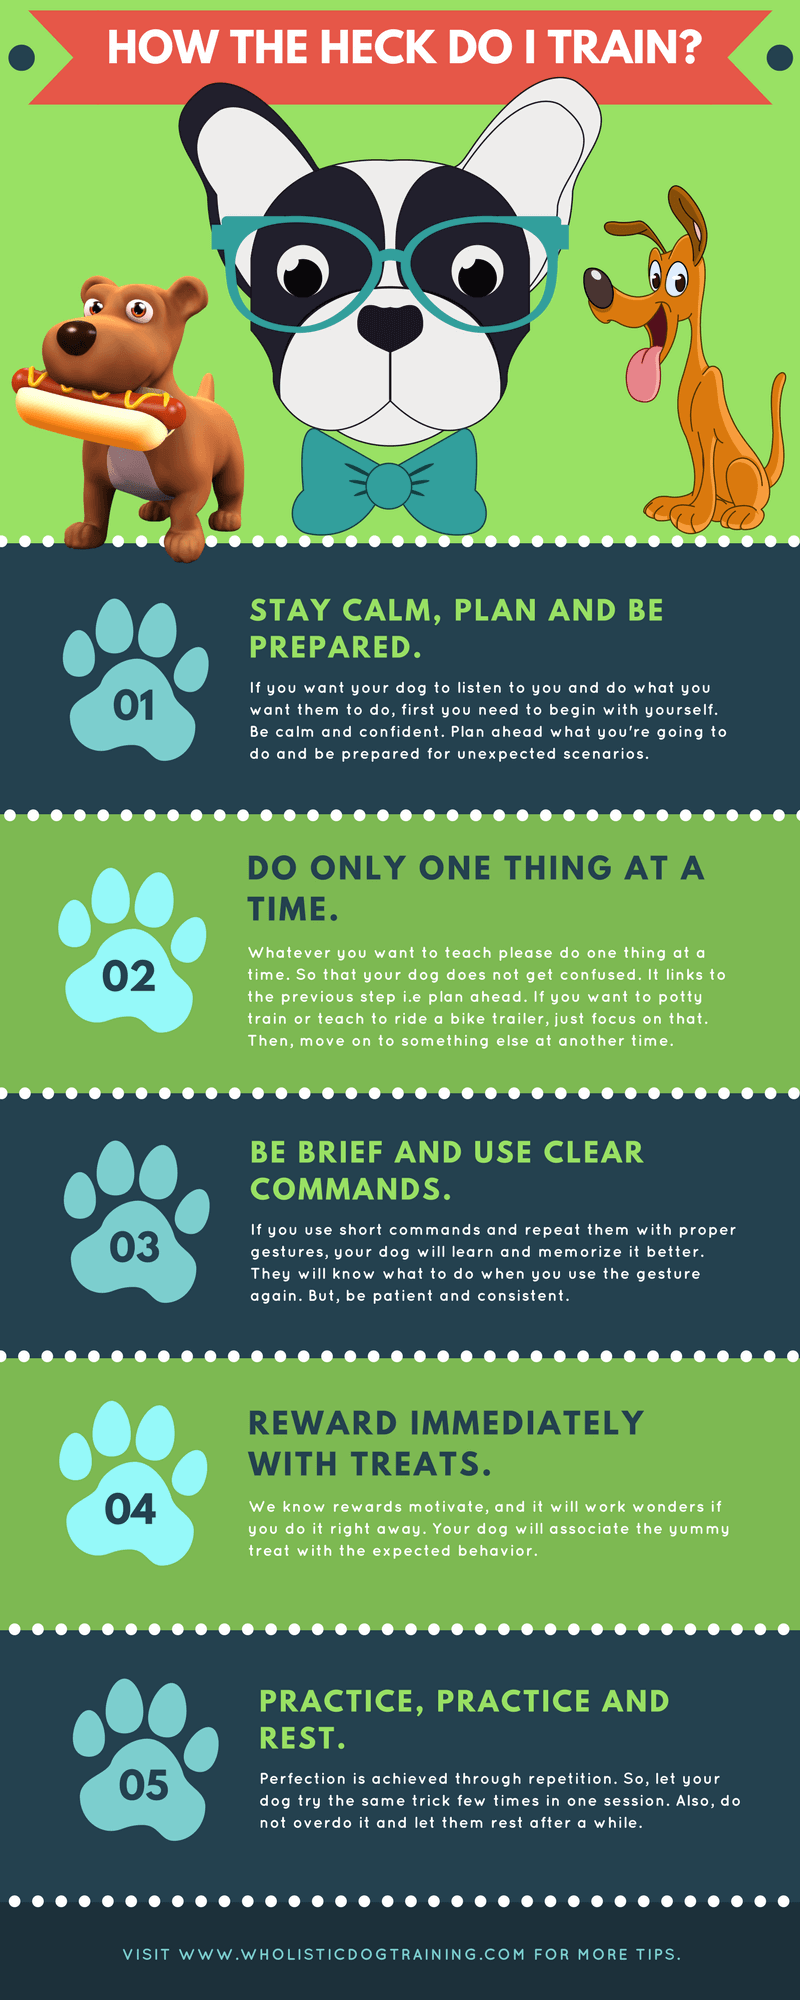 5 Ways You Can Easily Train Your Dog